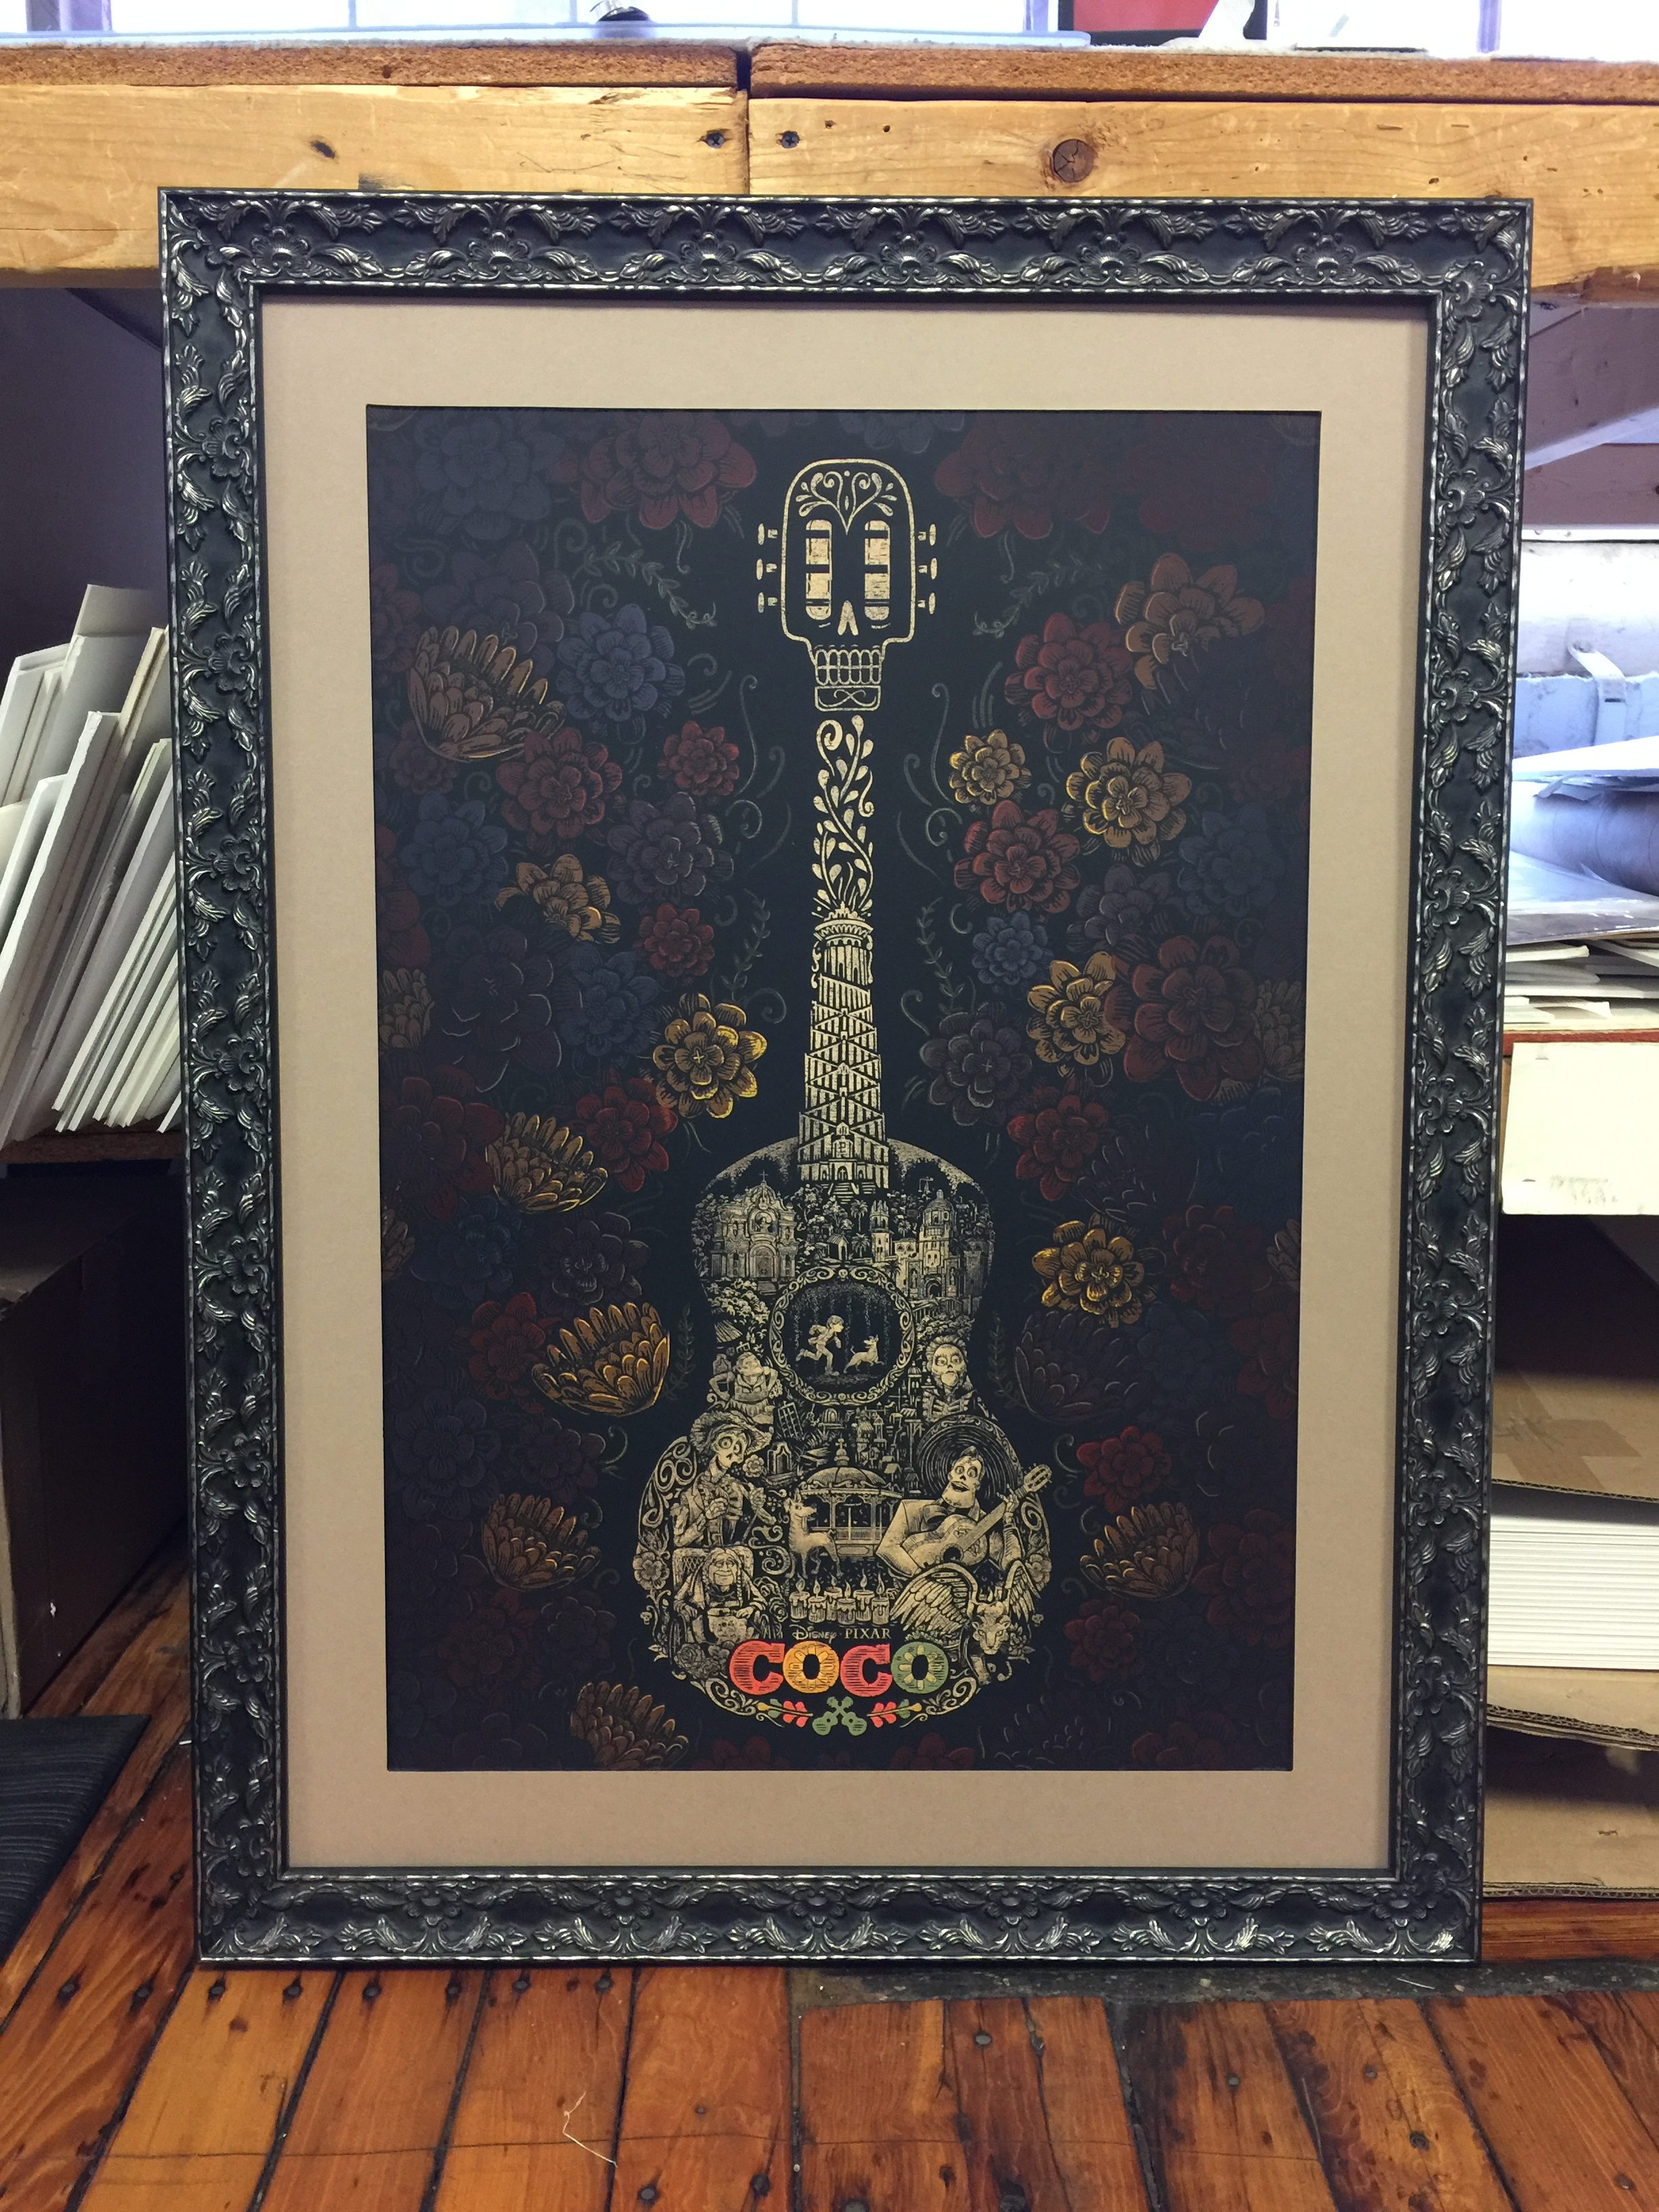 Framing stories framed in time a custom guitar piece we recently designed and framed check out that molding and mat combo jeuxipadfo Gallery